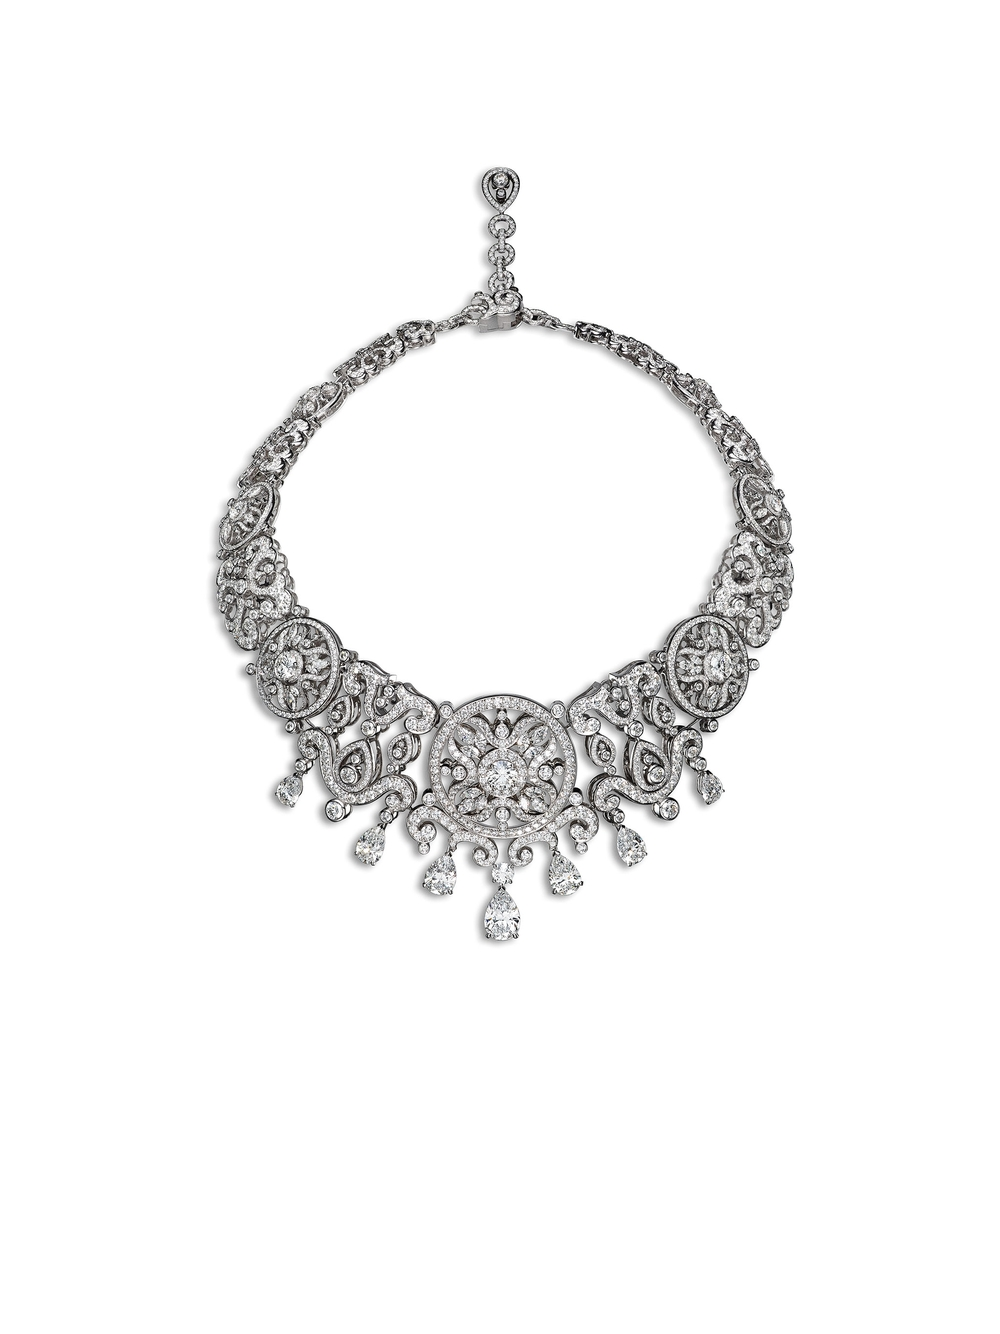 The Corona Necklace sparkles with diamonds and white gold. Photo by Laziz Hamani